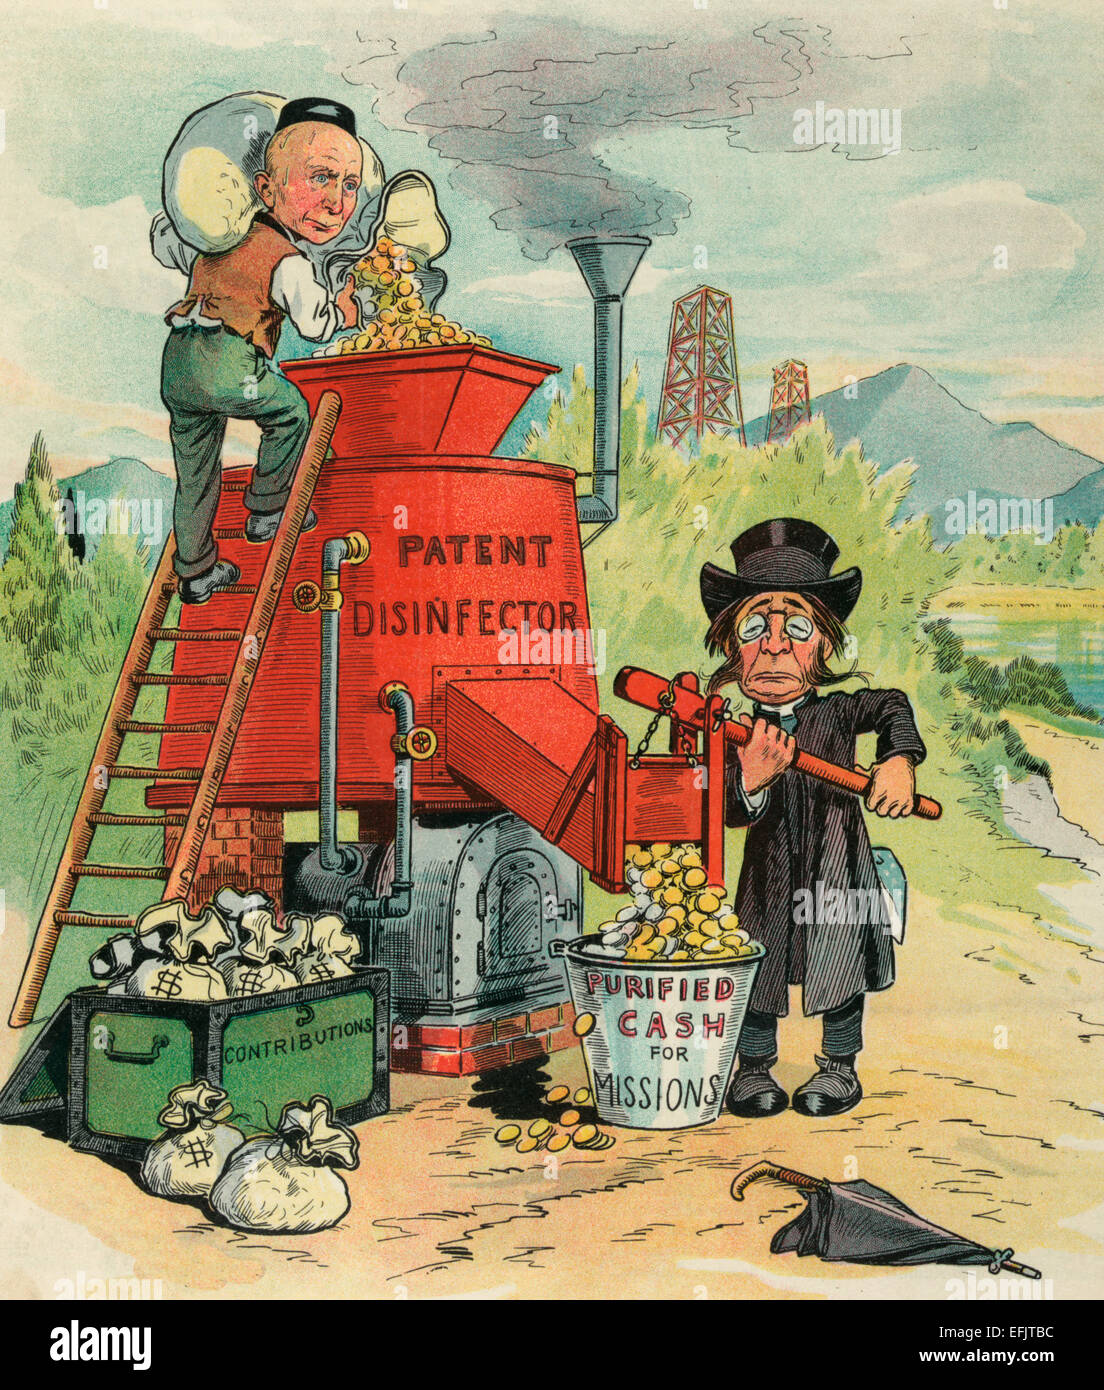 The cash purification plant - Illustration shows John D. Rockefeller standing on a ladder, dumping coins into a - Stock Image